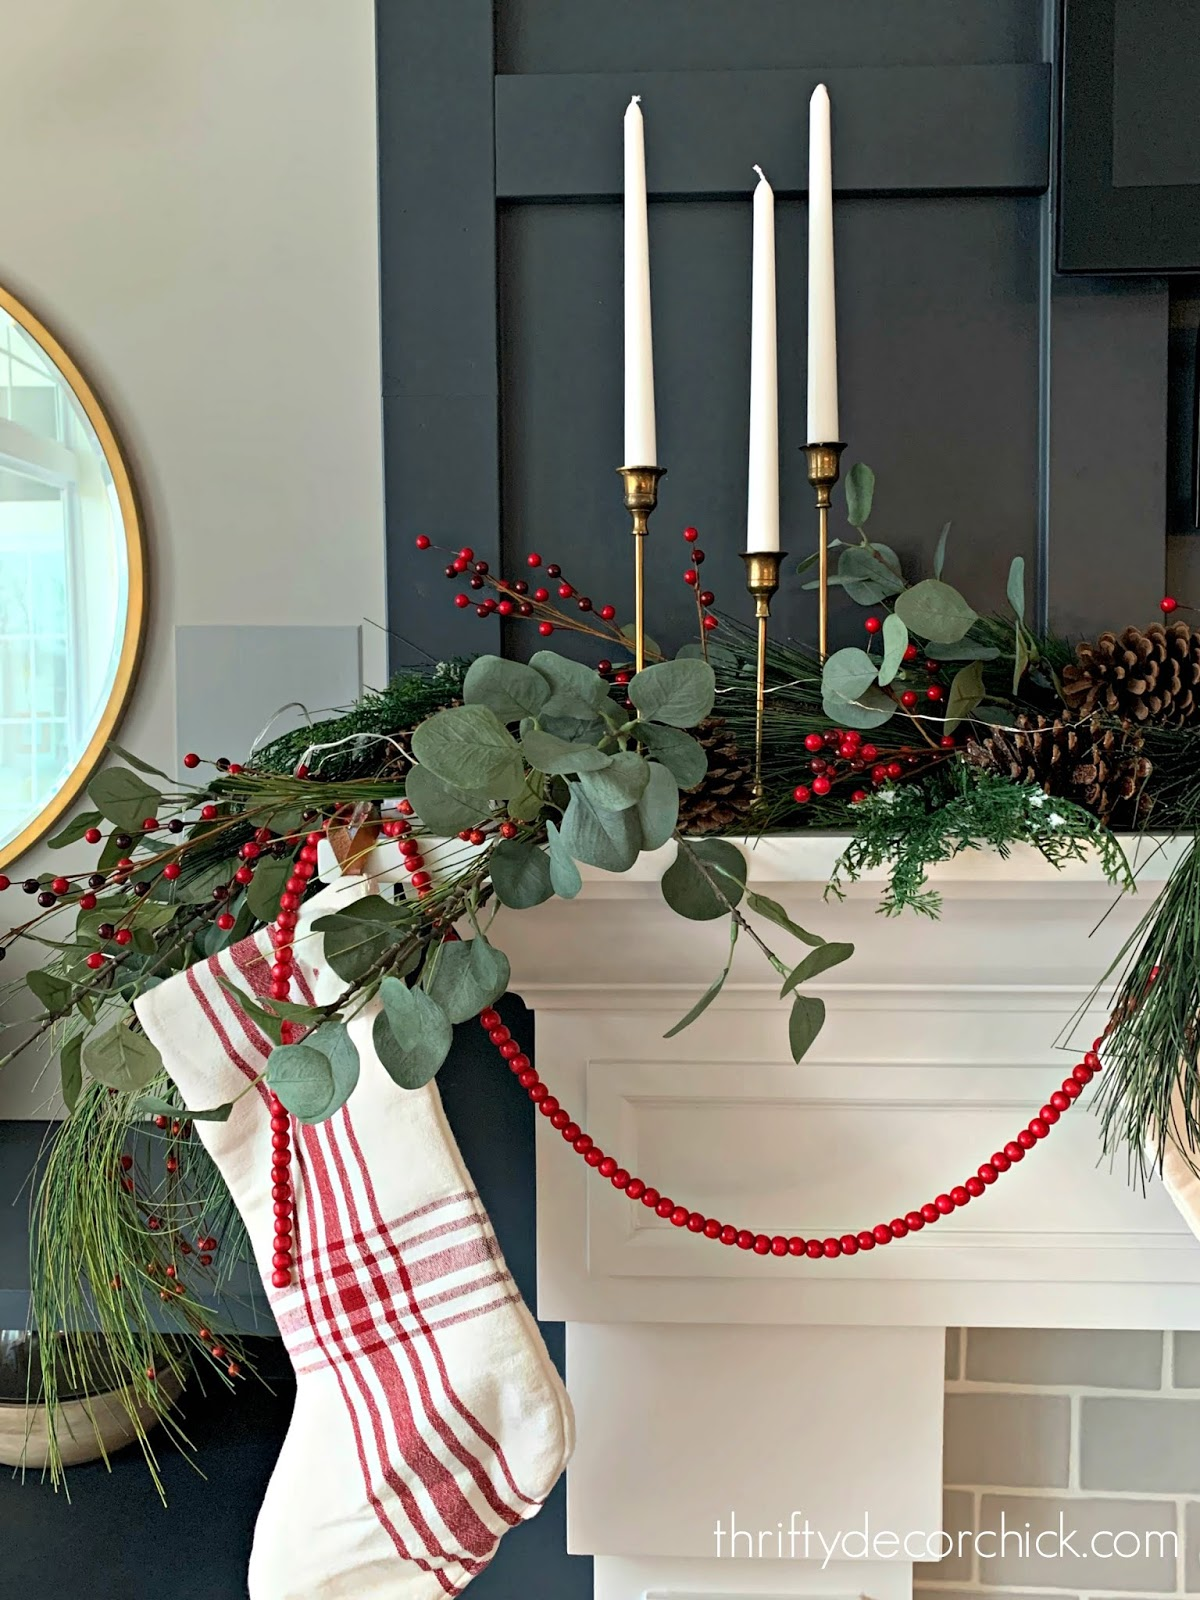 How to create a full and beautiful Christmas mantel